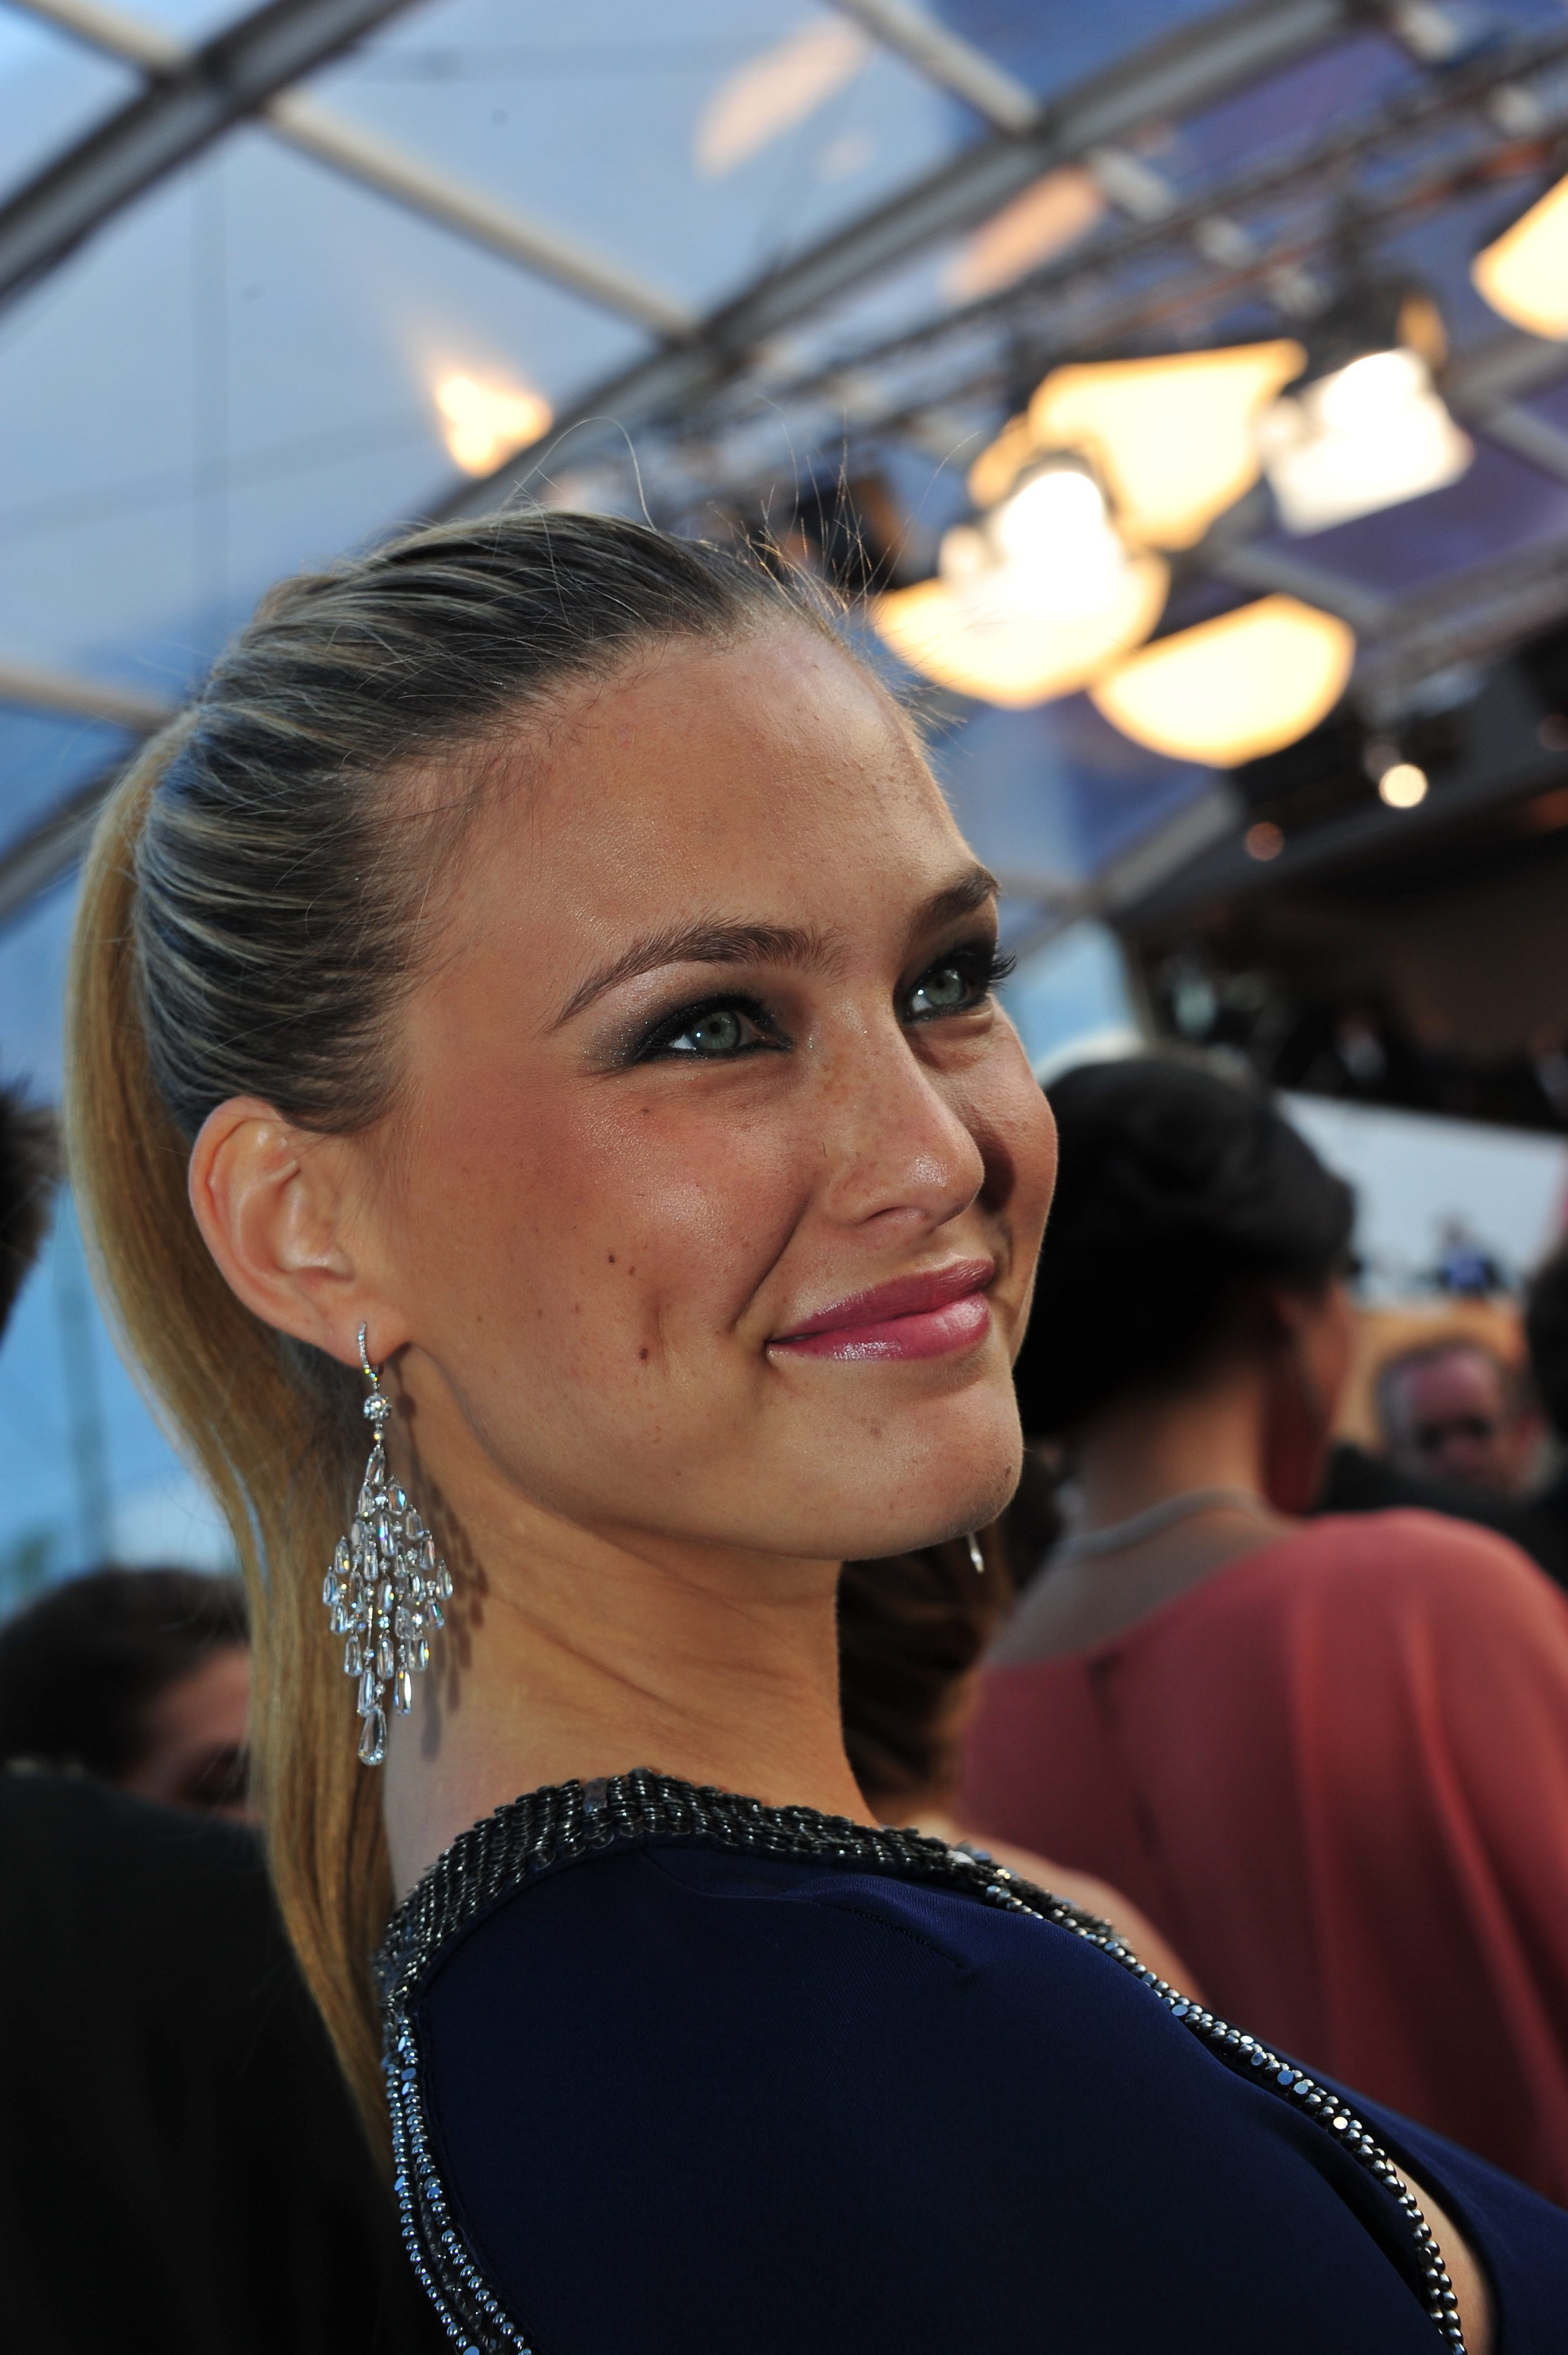 Bar Refaeli photo 546 of 1379 pics, wallpaper - photo ... Bar Refaeli